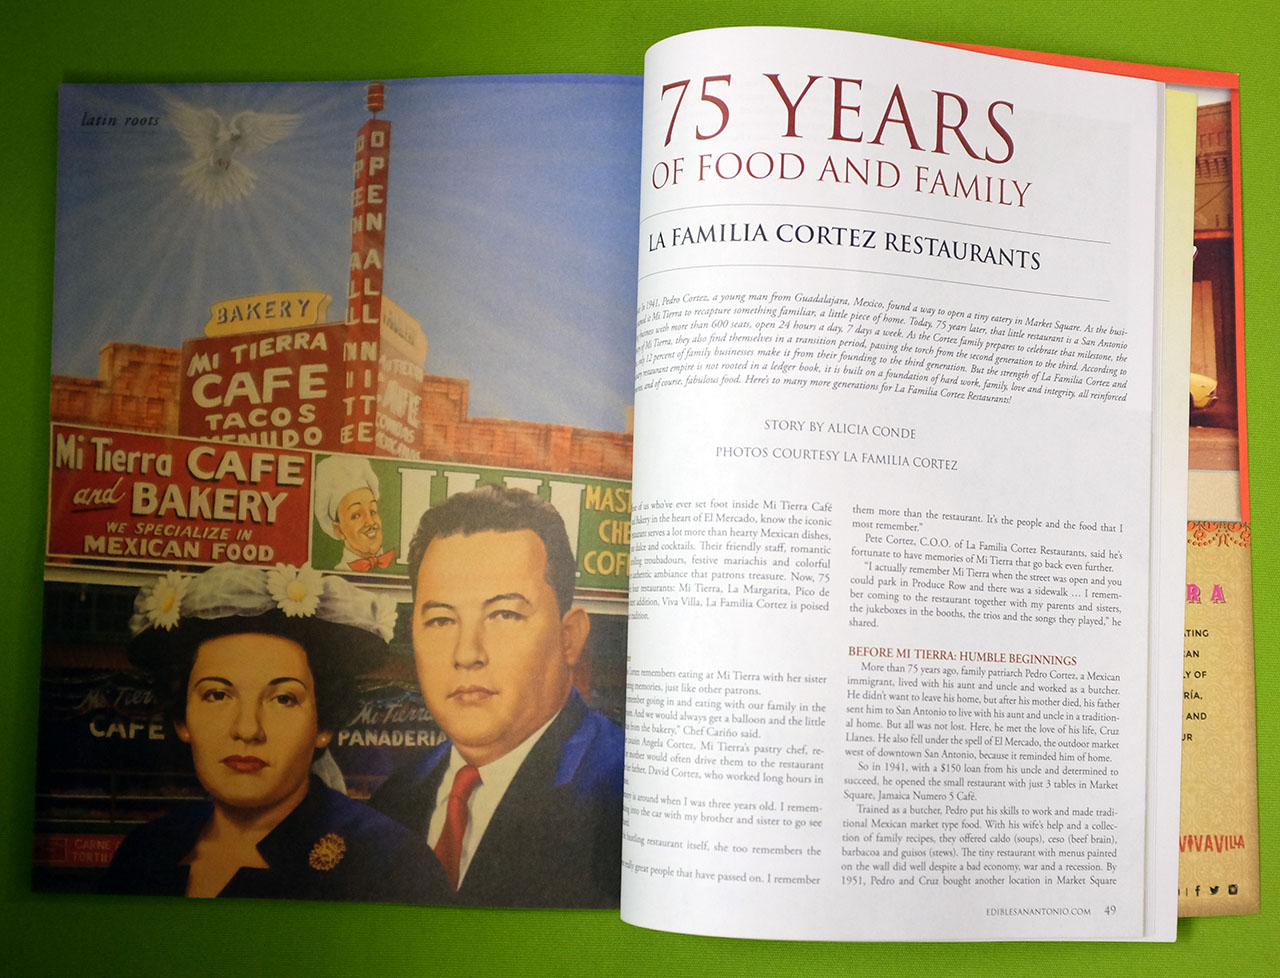 Edible San Antonio - 75 Years of Food and Family